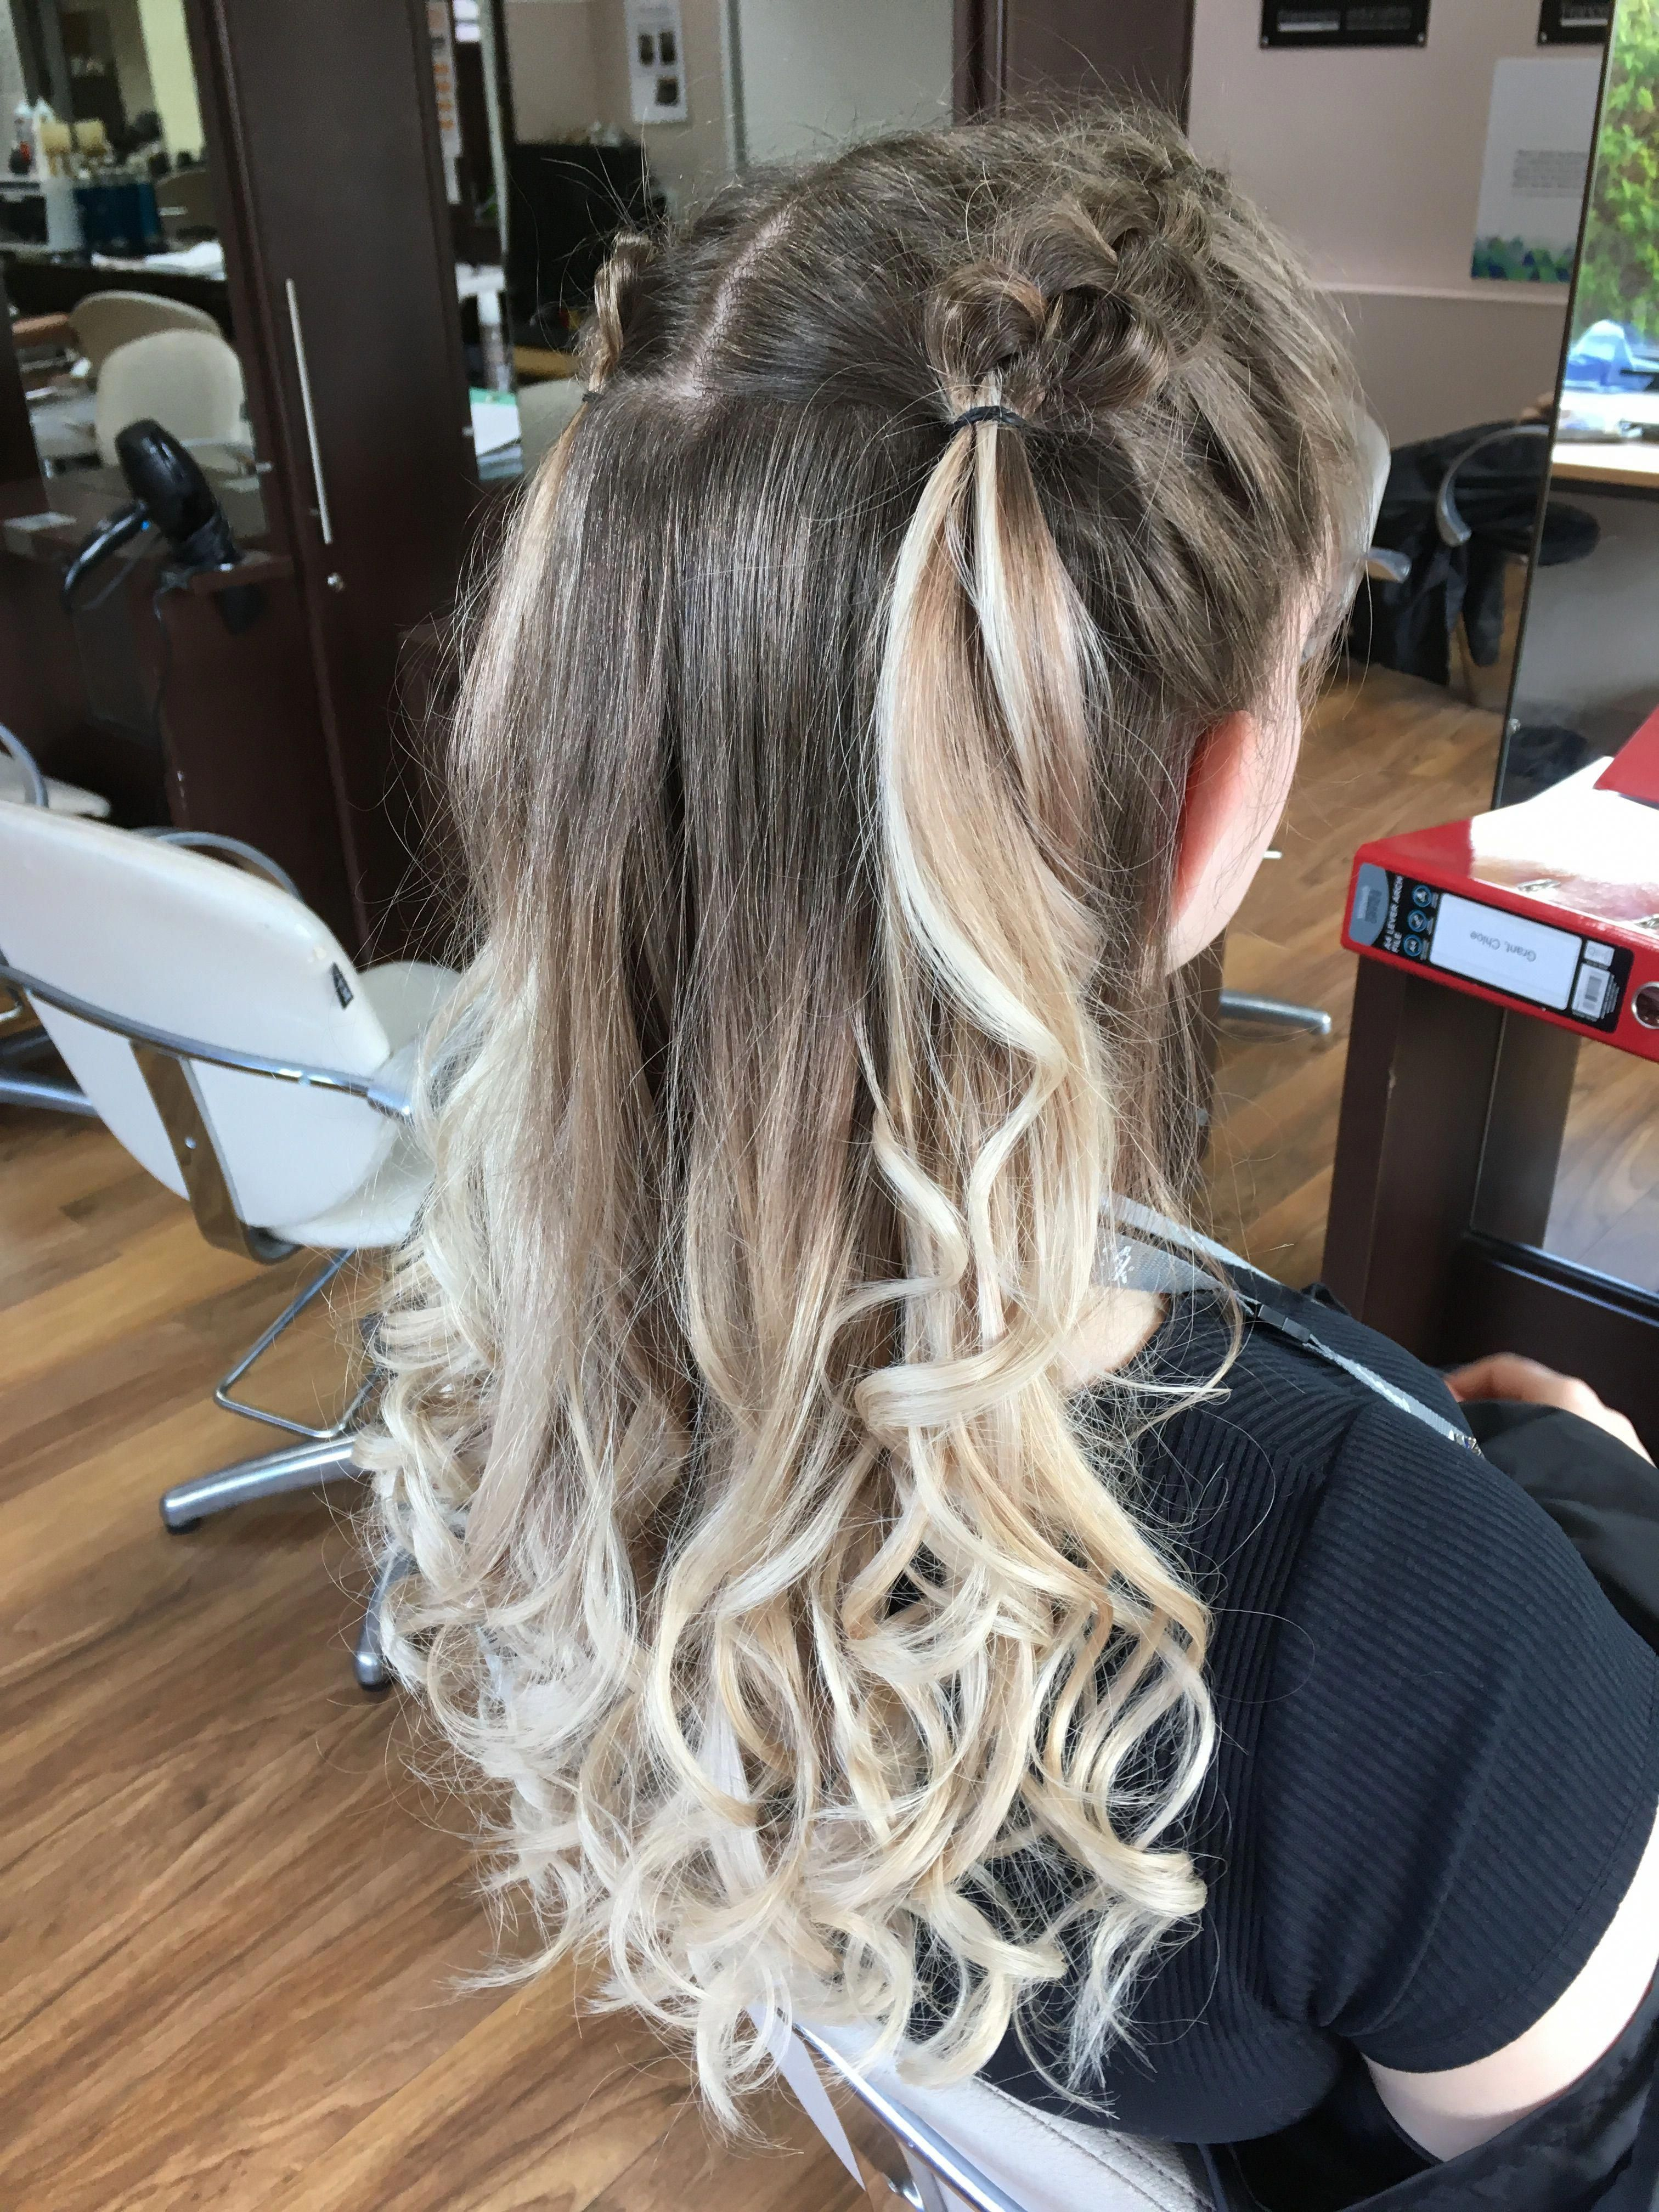 Portfolio Ref 24 Service Curled With Straighteners Dutch Braided The Top Section To Create A Ha Two Braid Hairstyles Half Up Hair Half Braided Hairstyles